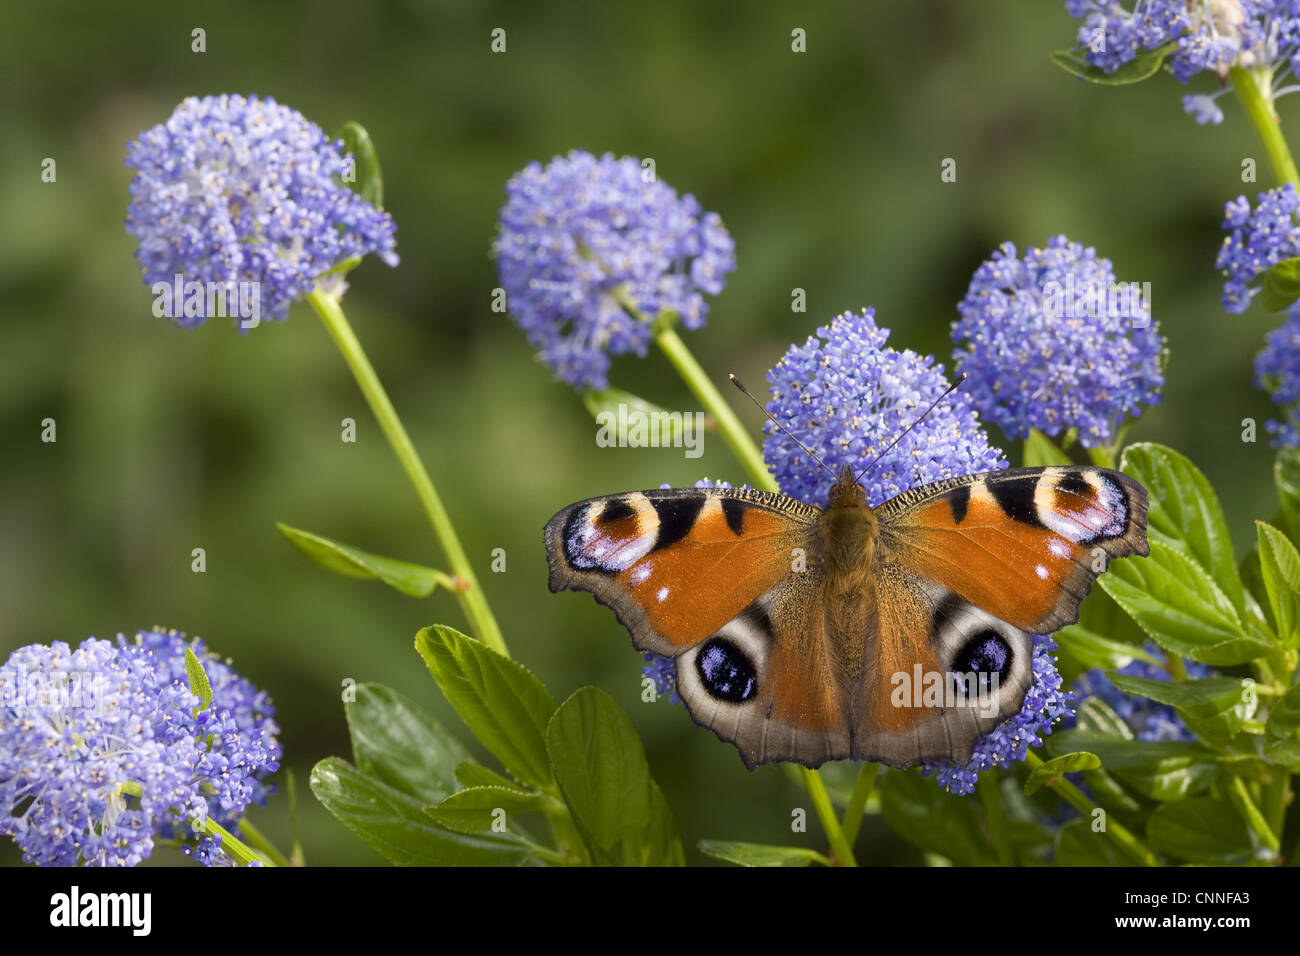 Peacock Butterfly (Inachis io) adult, feeding on California Lilac (Ceanothus arboreus) flowers in garden, England, - Stock Image